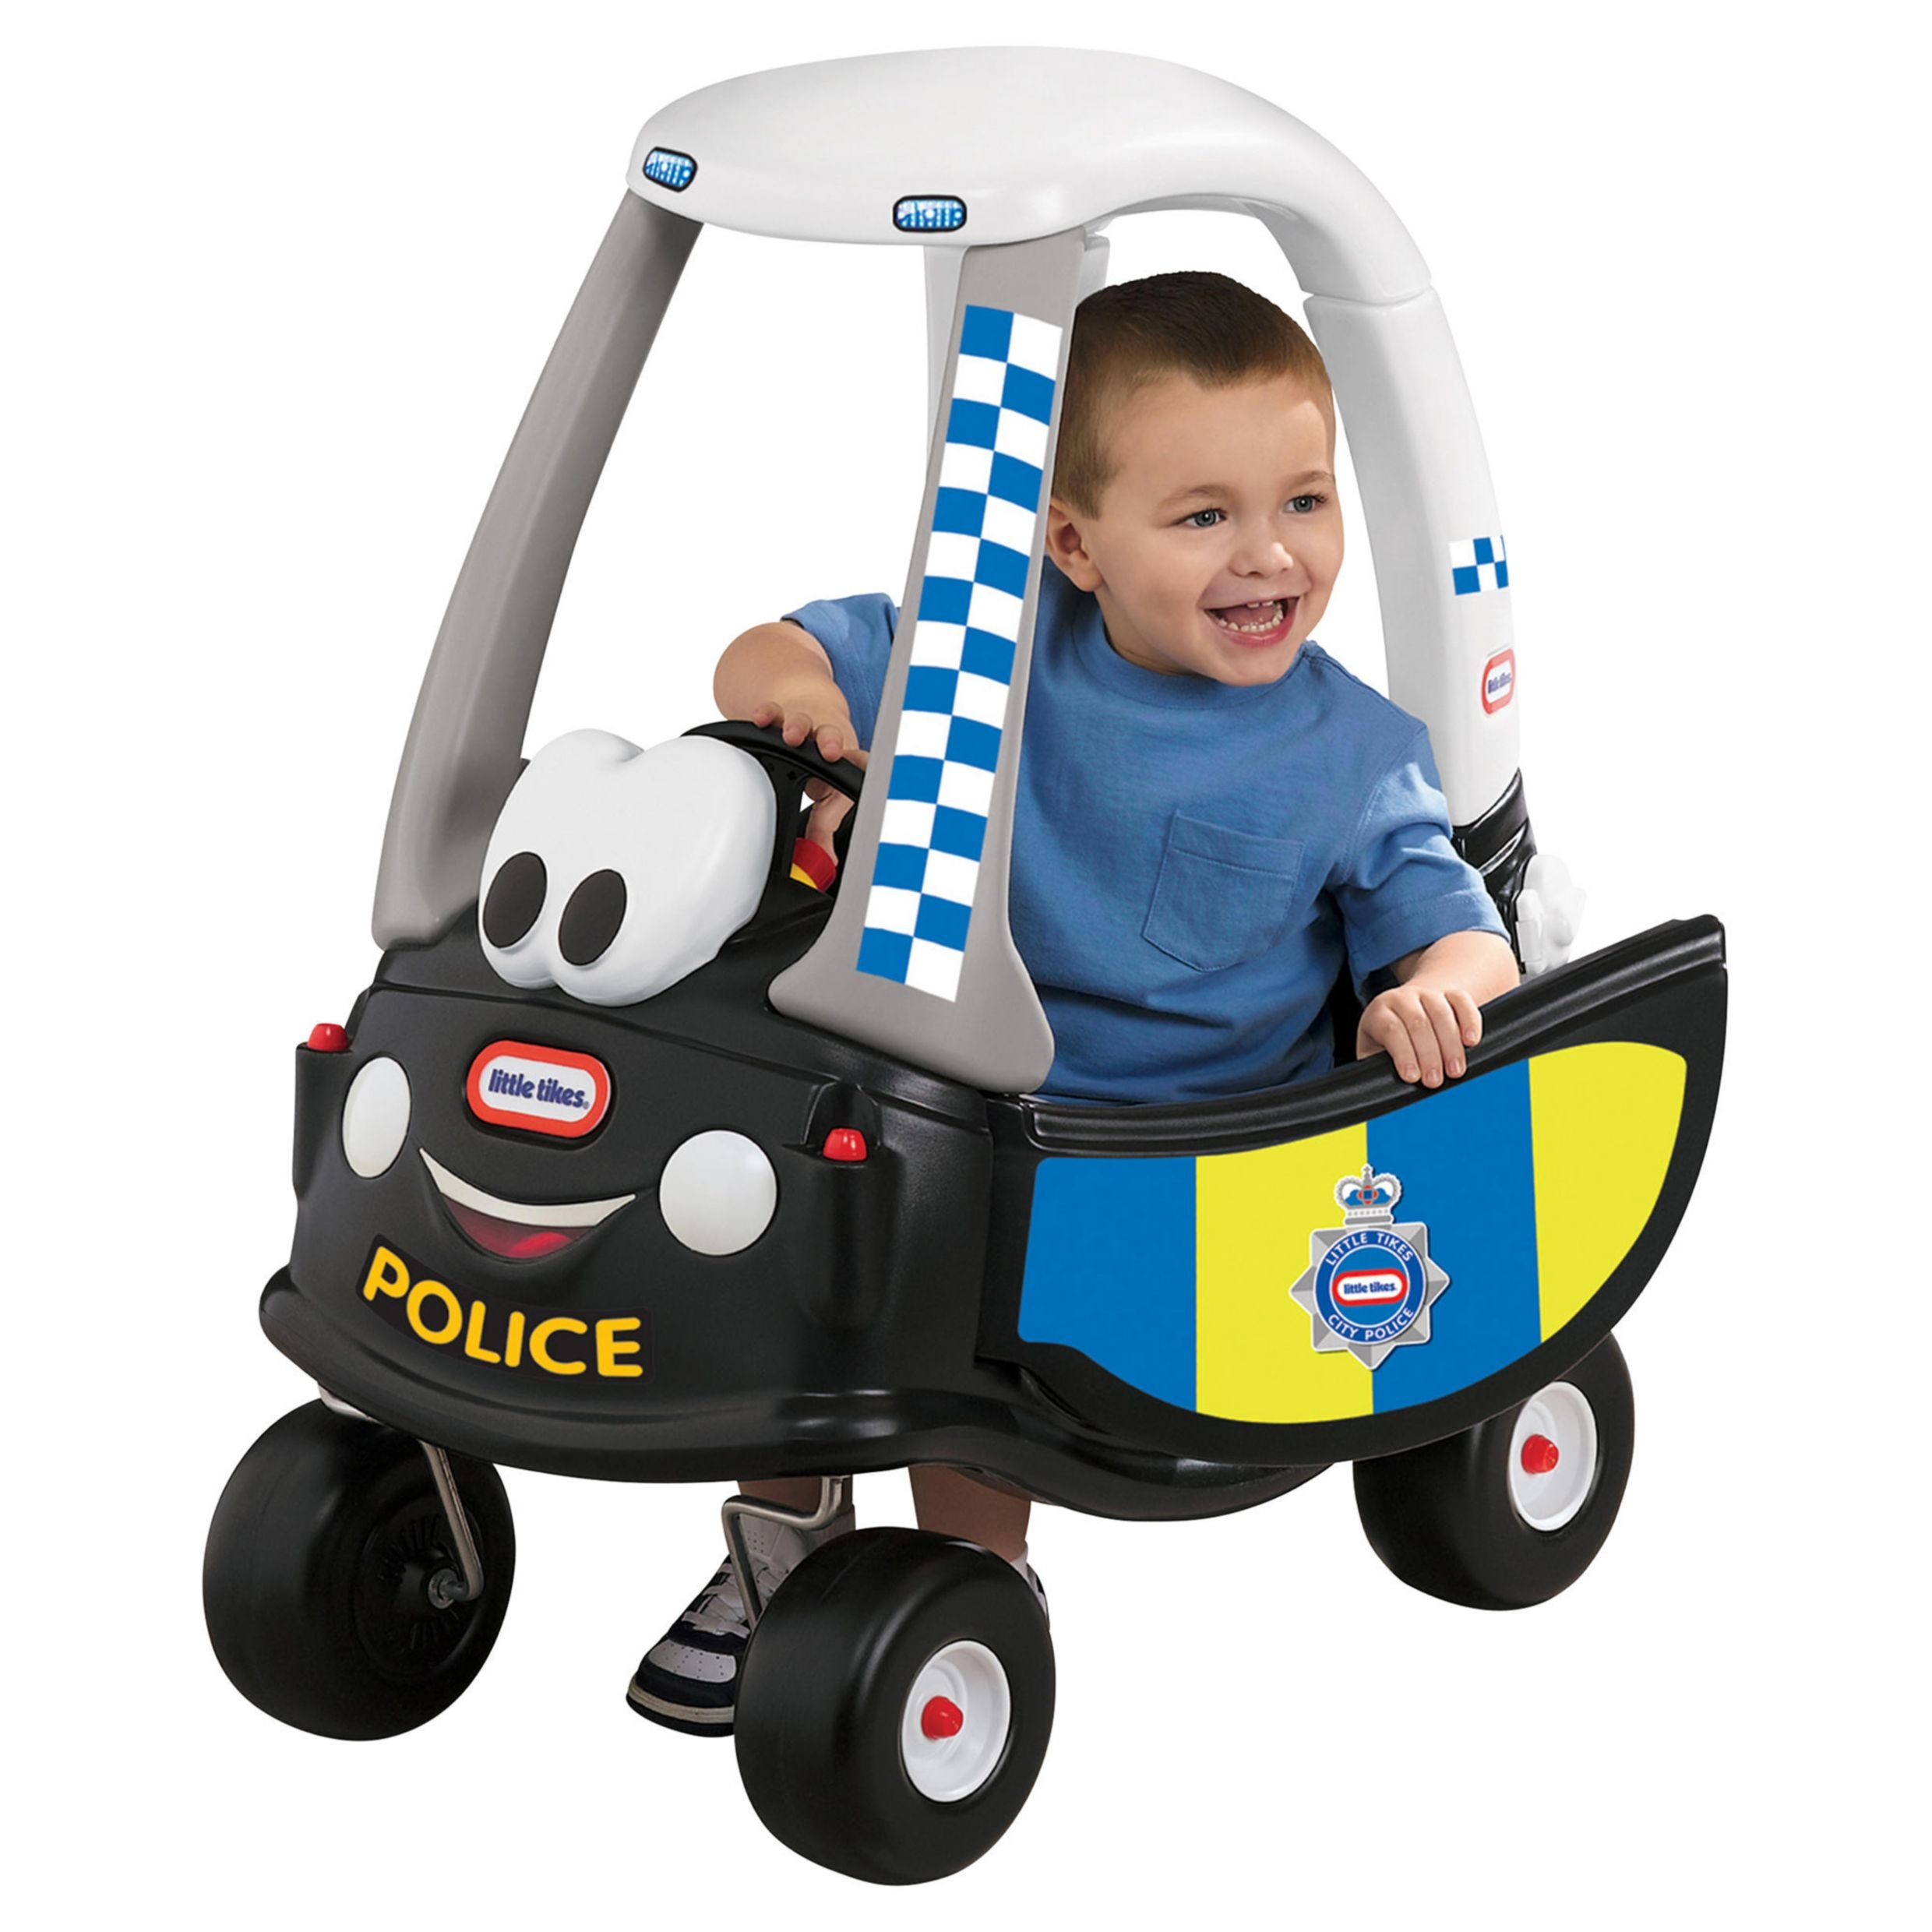 Hunting Toys For Little Boys : Little tikes classic police red cozy coupe car indoor